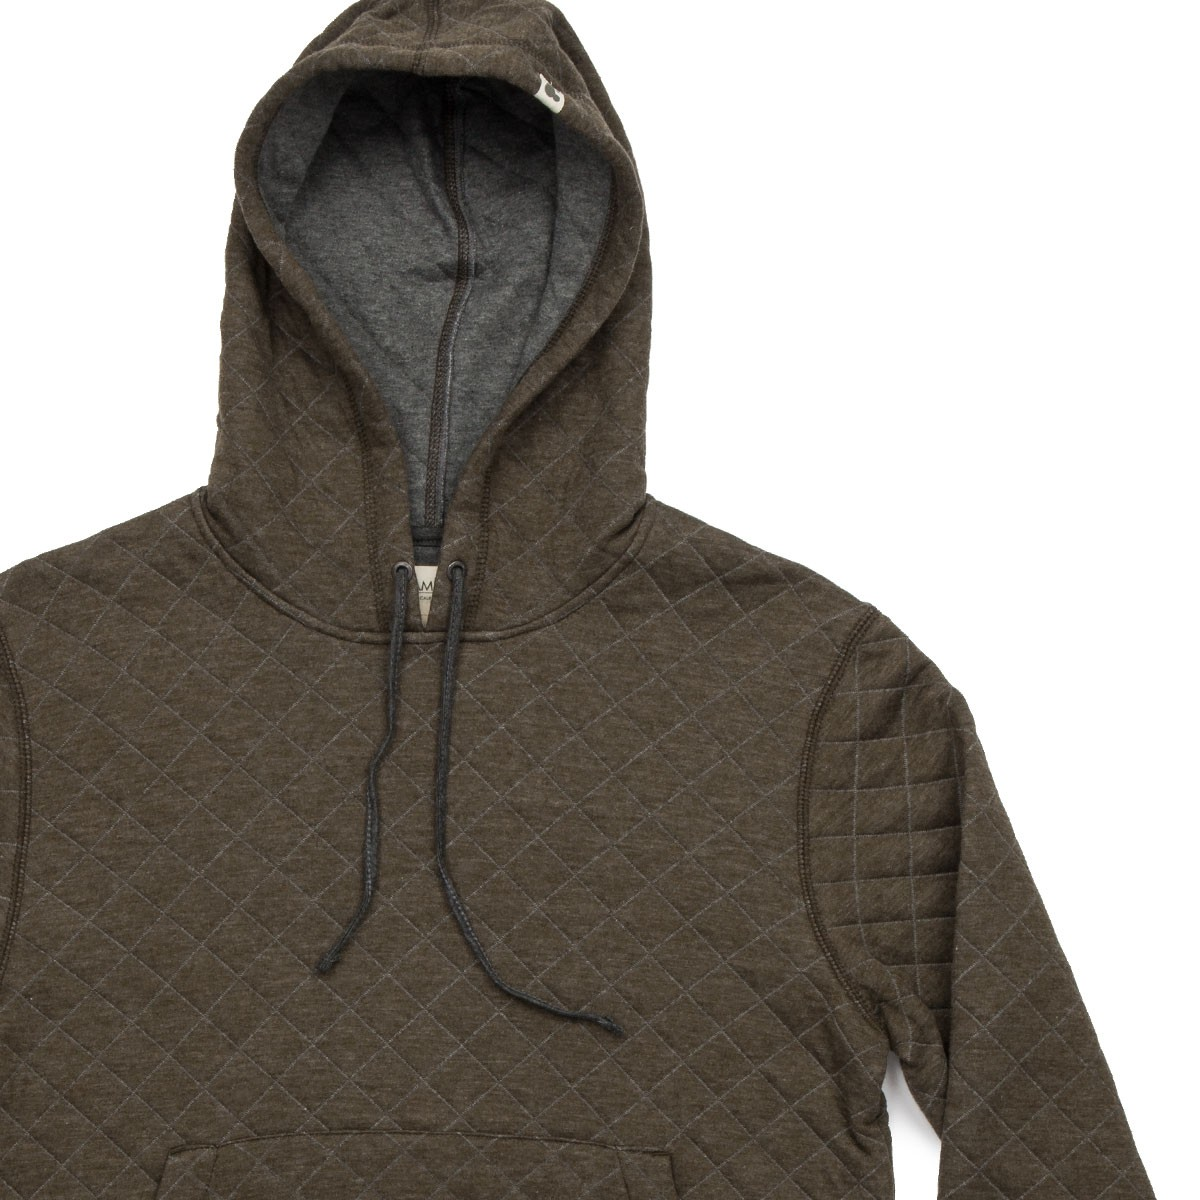 9f2111a1f Ambig Dwight Hooded Quilted Sweatshirt - Heather Olive